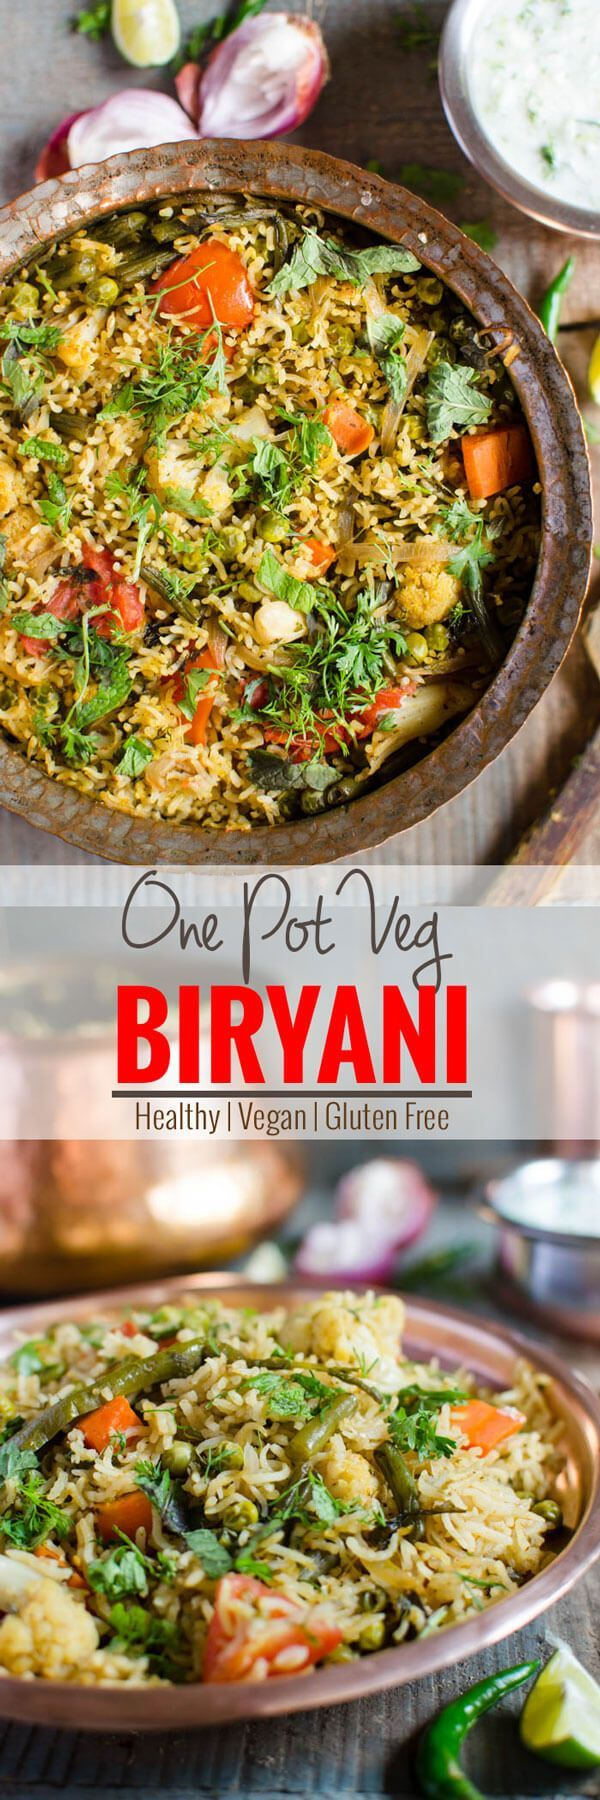 Vegetable biryani is a meatless Indian delicacy perfect for vegetarian people. It is prepared using a variety of fresh veggies. This veg. biryani is nutritious & healthy | watchwhatueat.com